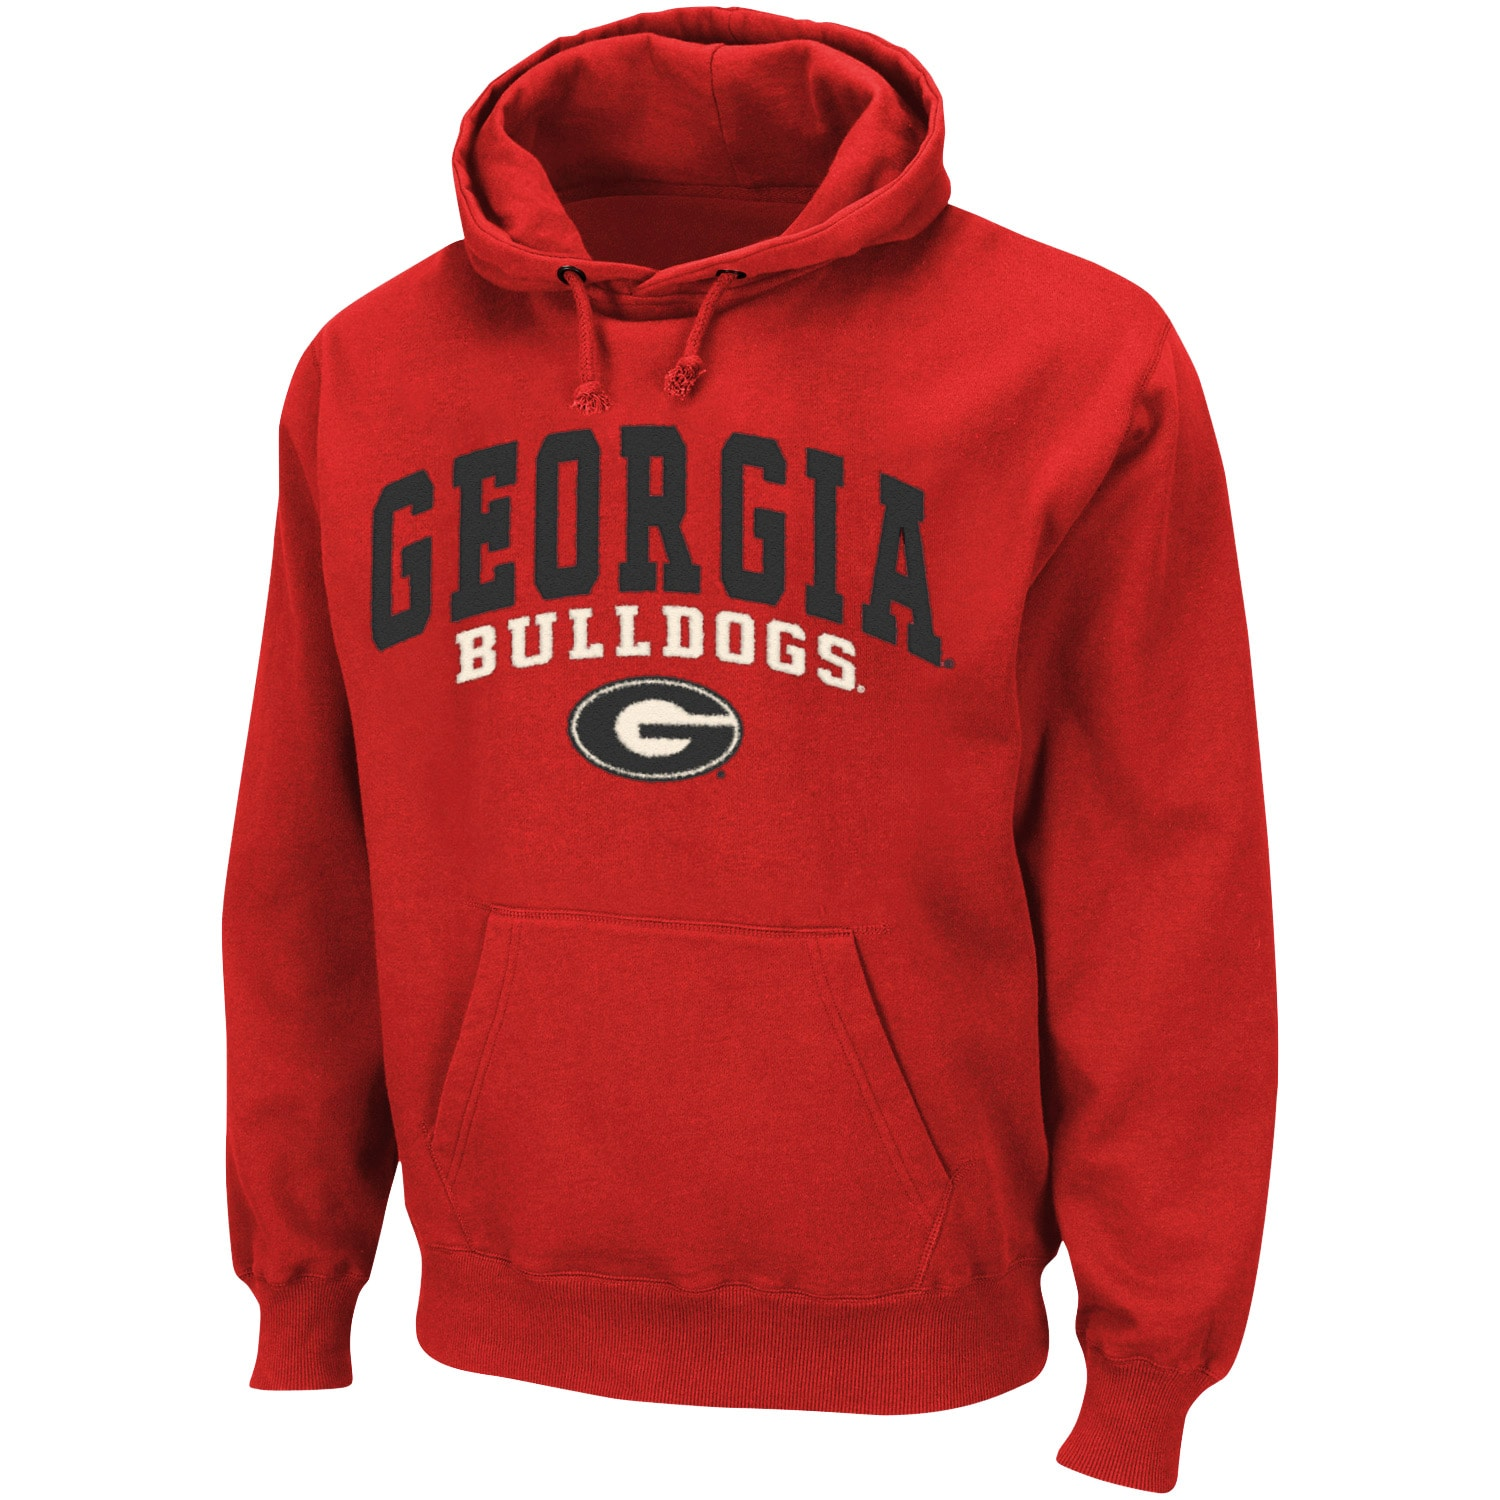 Uga Pullover Sweatshirt Bulldogs Sweatshirt Georgia Bulldogs Sweatshirt Bulldogs